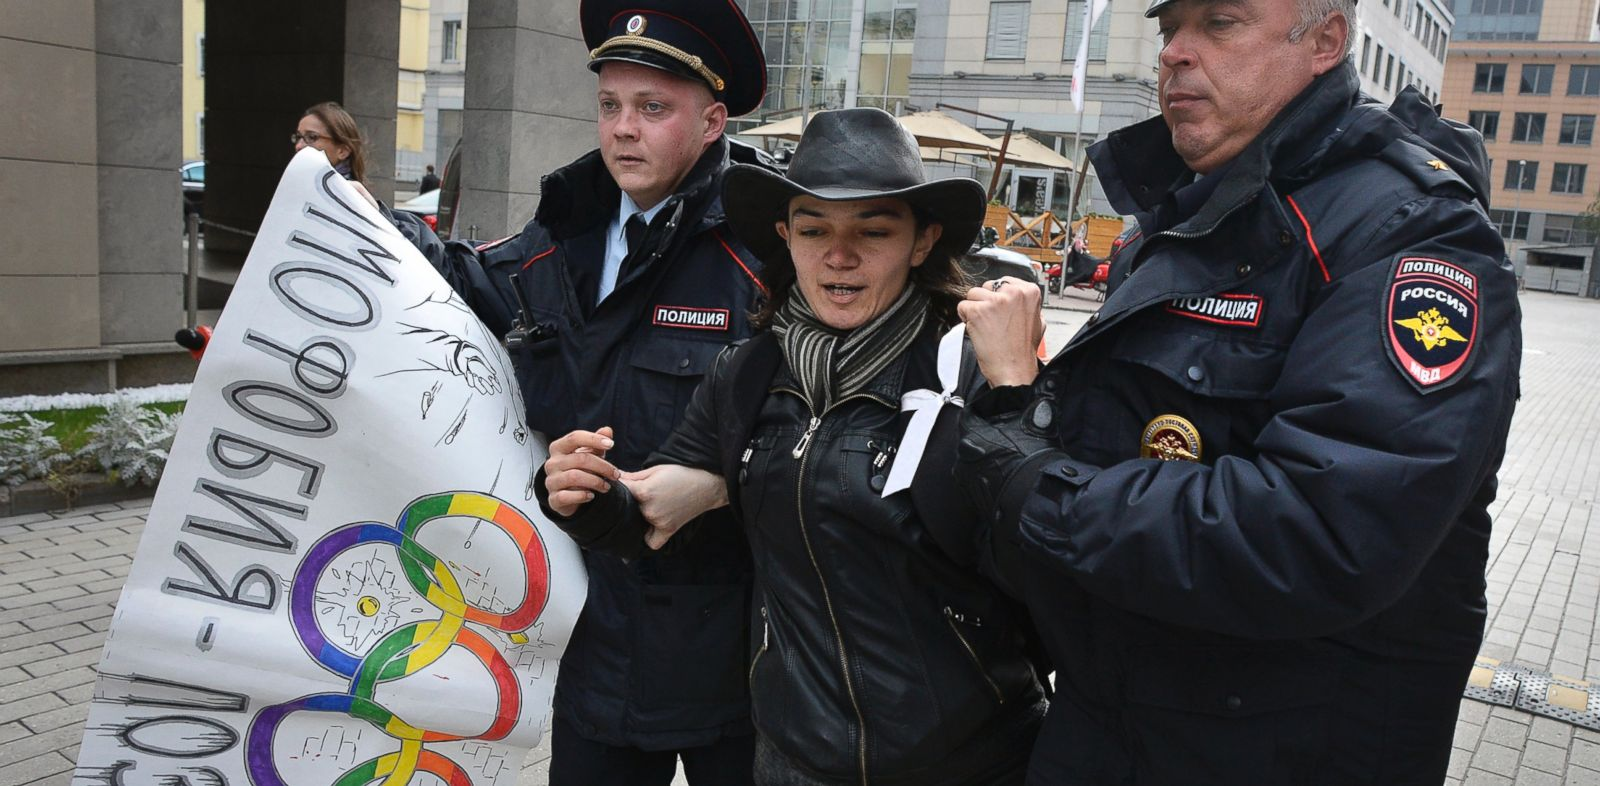 PHOTO: Police officers detain a gay rights activist during a protest outside the headquarters of the Sochi 2014 Organizing Committee in central Moscow, Sept. 25, 2013.